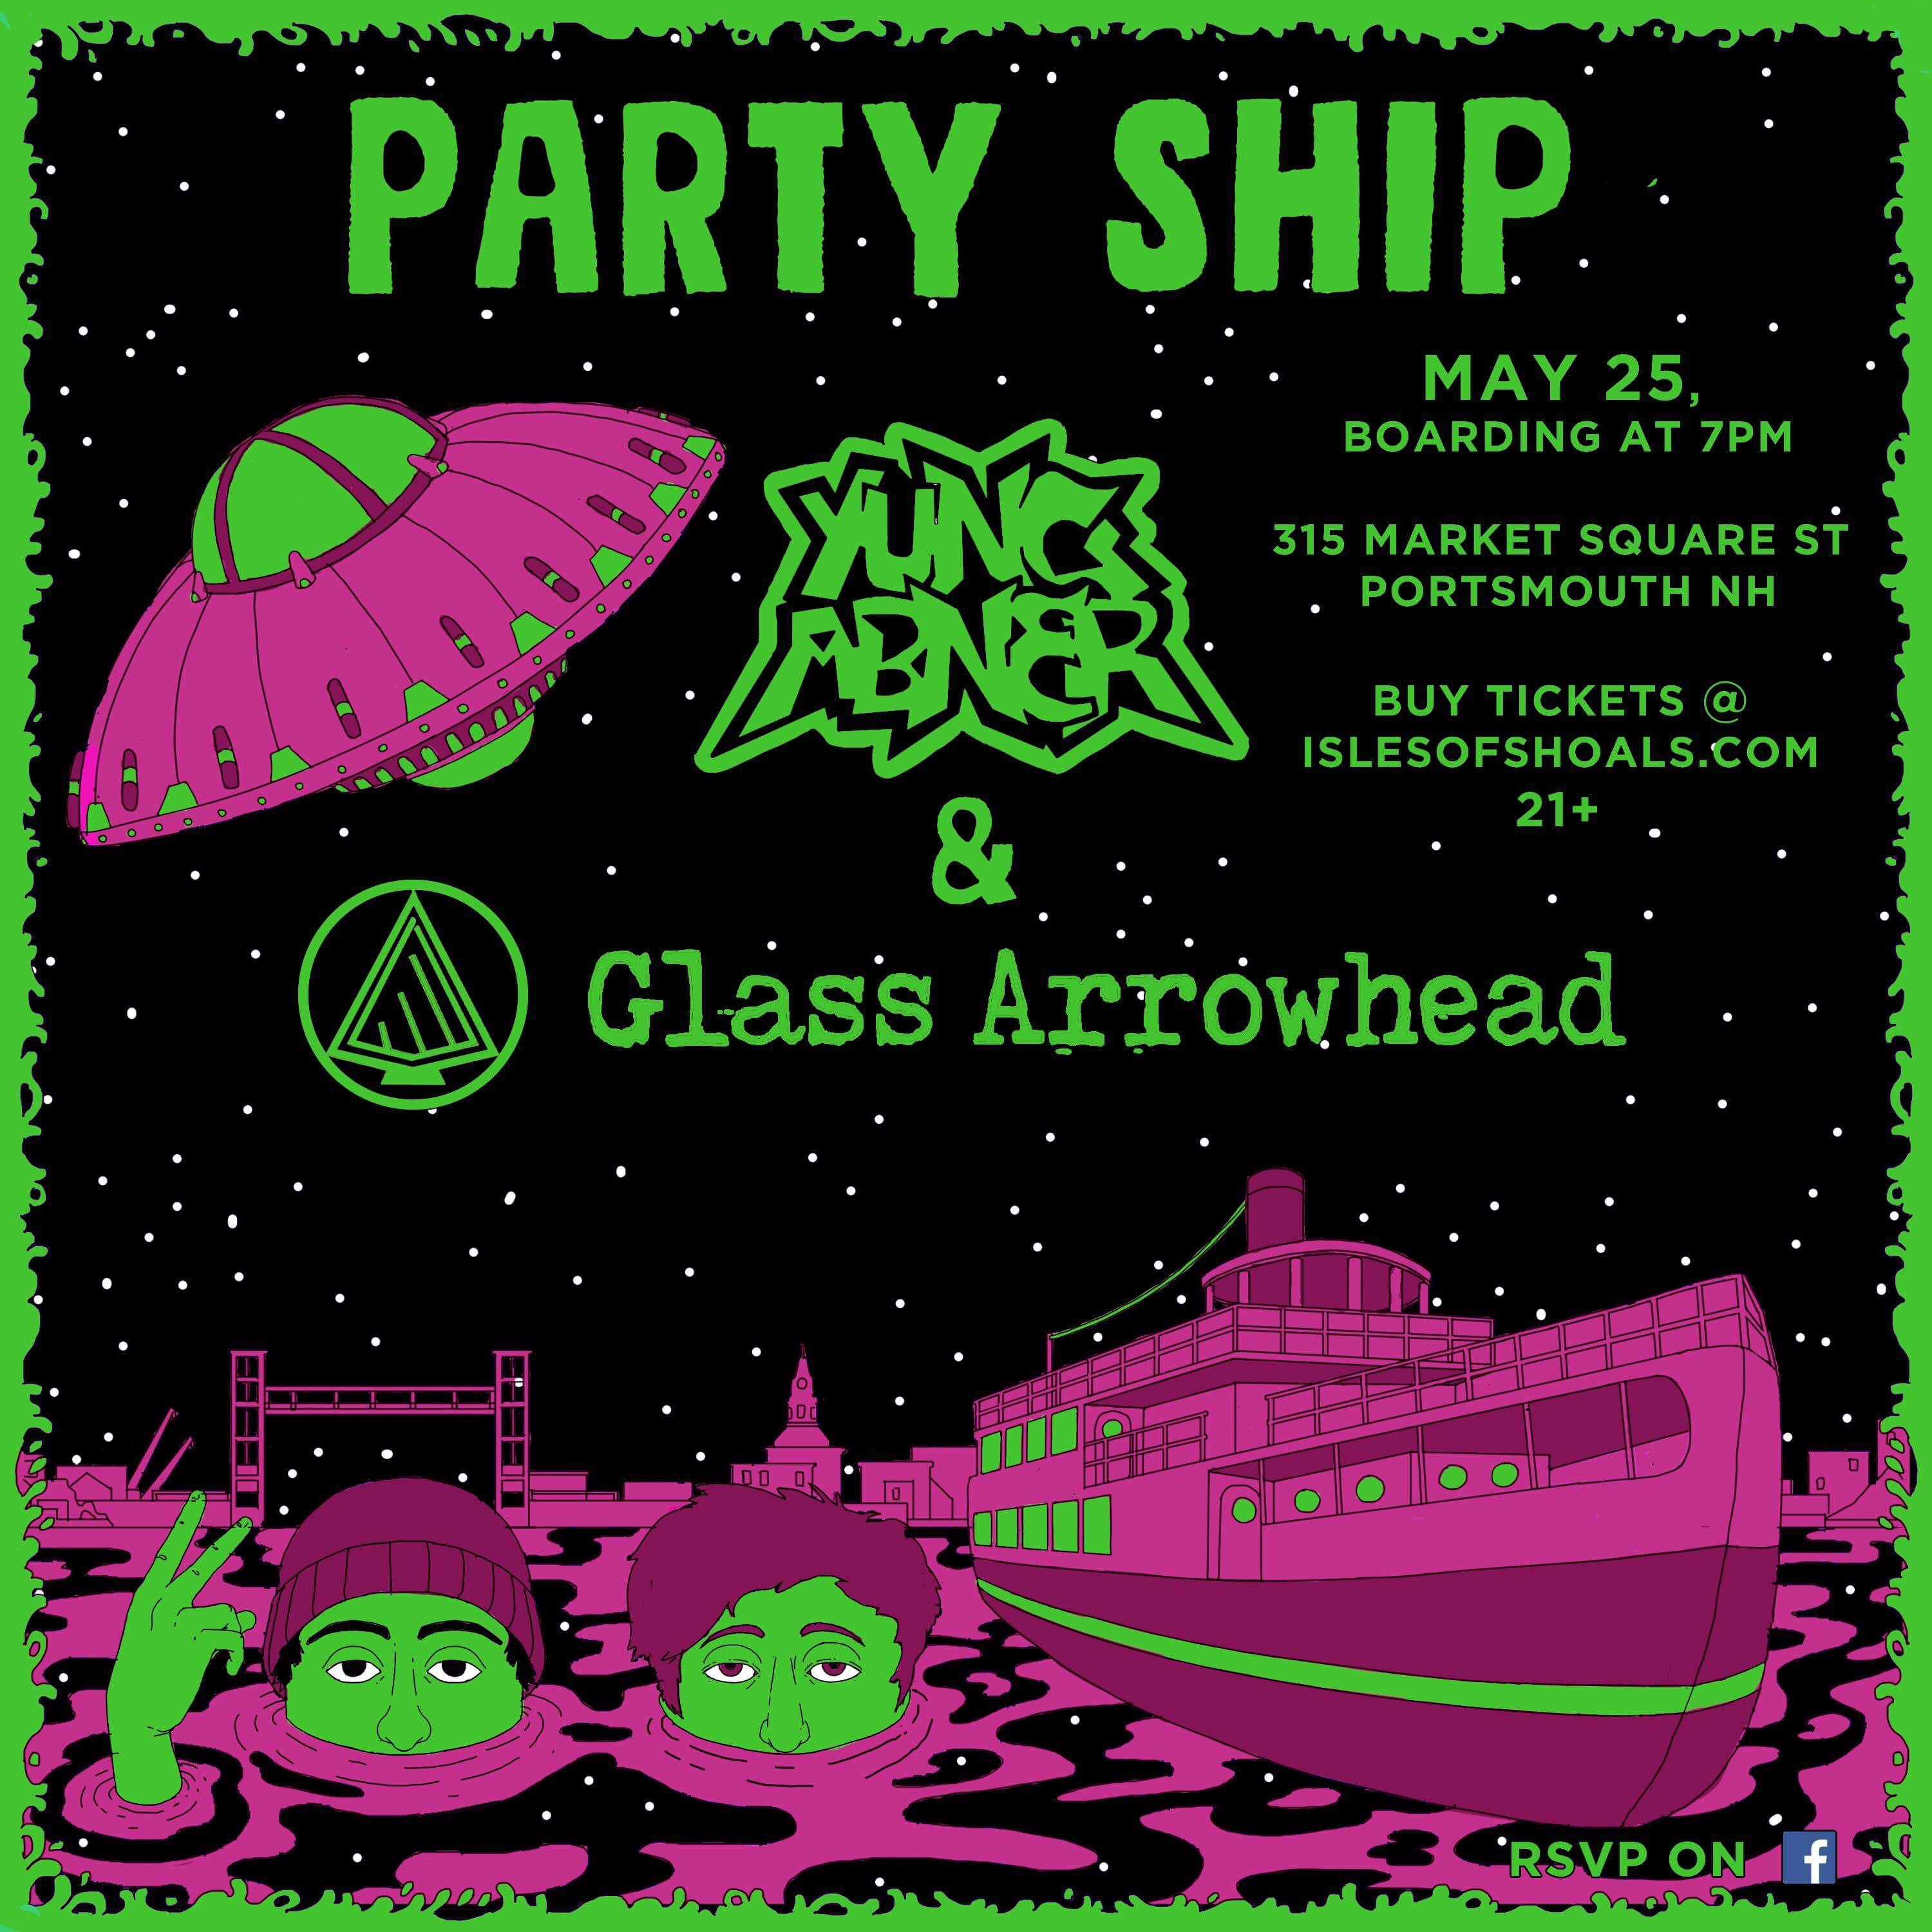 Party Ship w/  Yung Abner and Glass Arrowhead Image